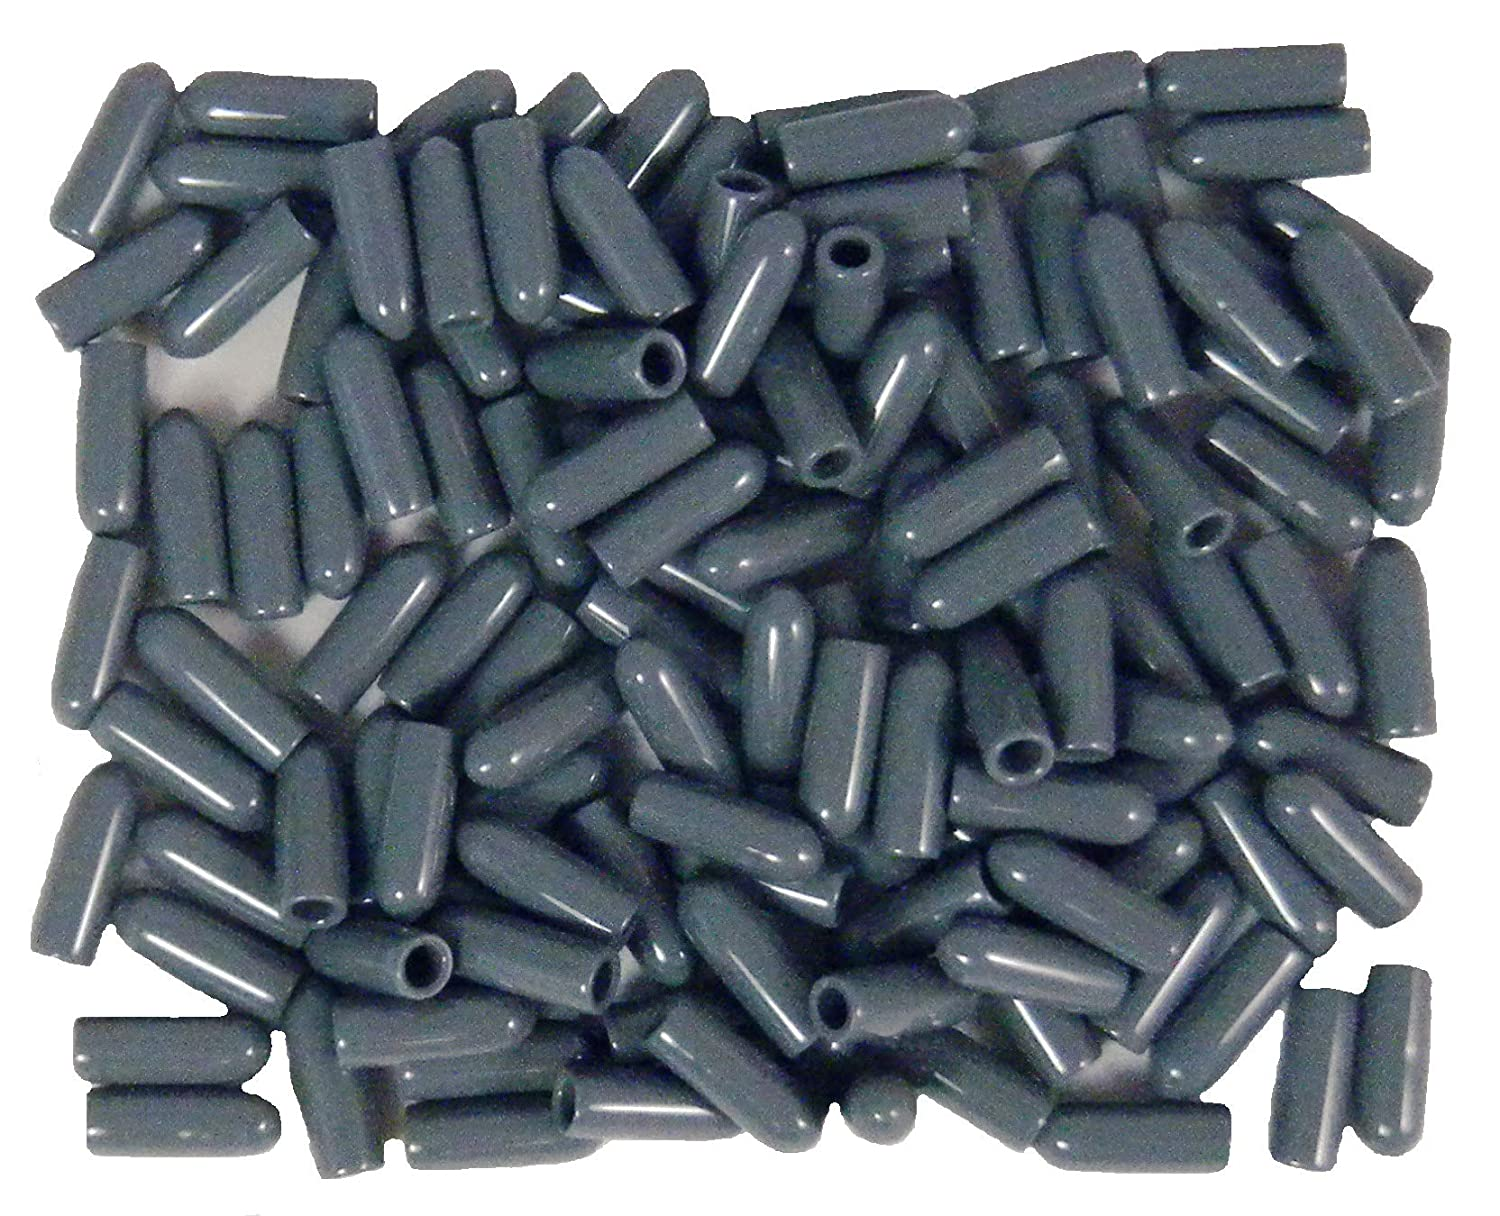 125 Universal Grey Gray Dishwasher Rack Tip Tine Cover Caps Just Push On to Repair